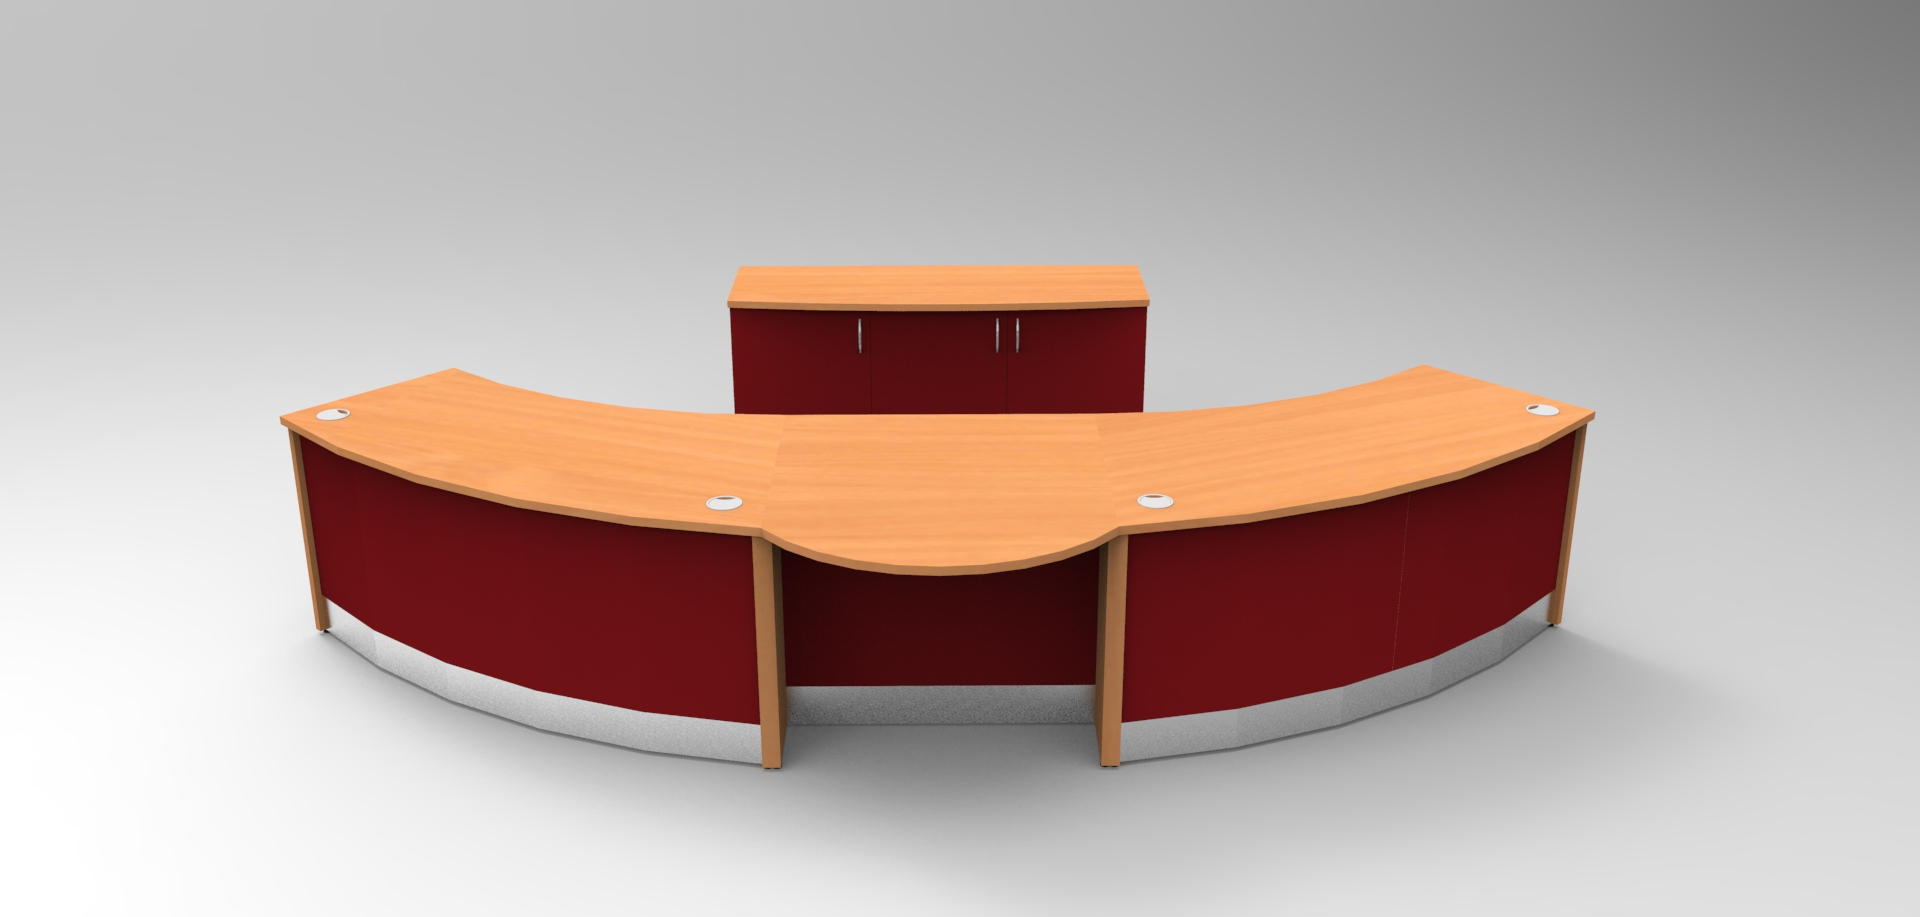 Image 318A - Aero curved DDA reception desk finished in Beech and Burgundy.